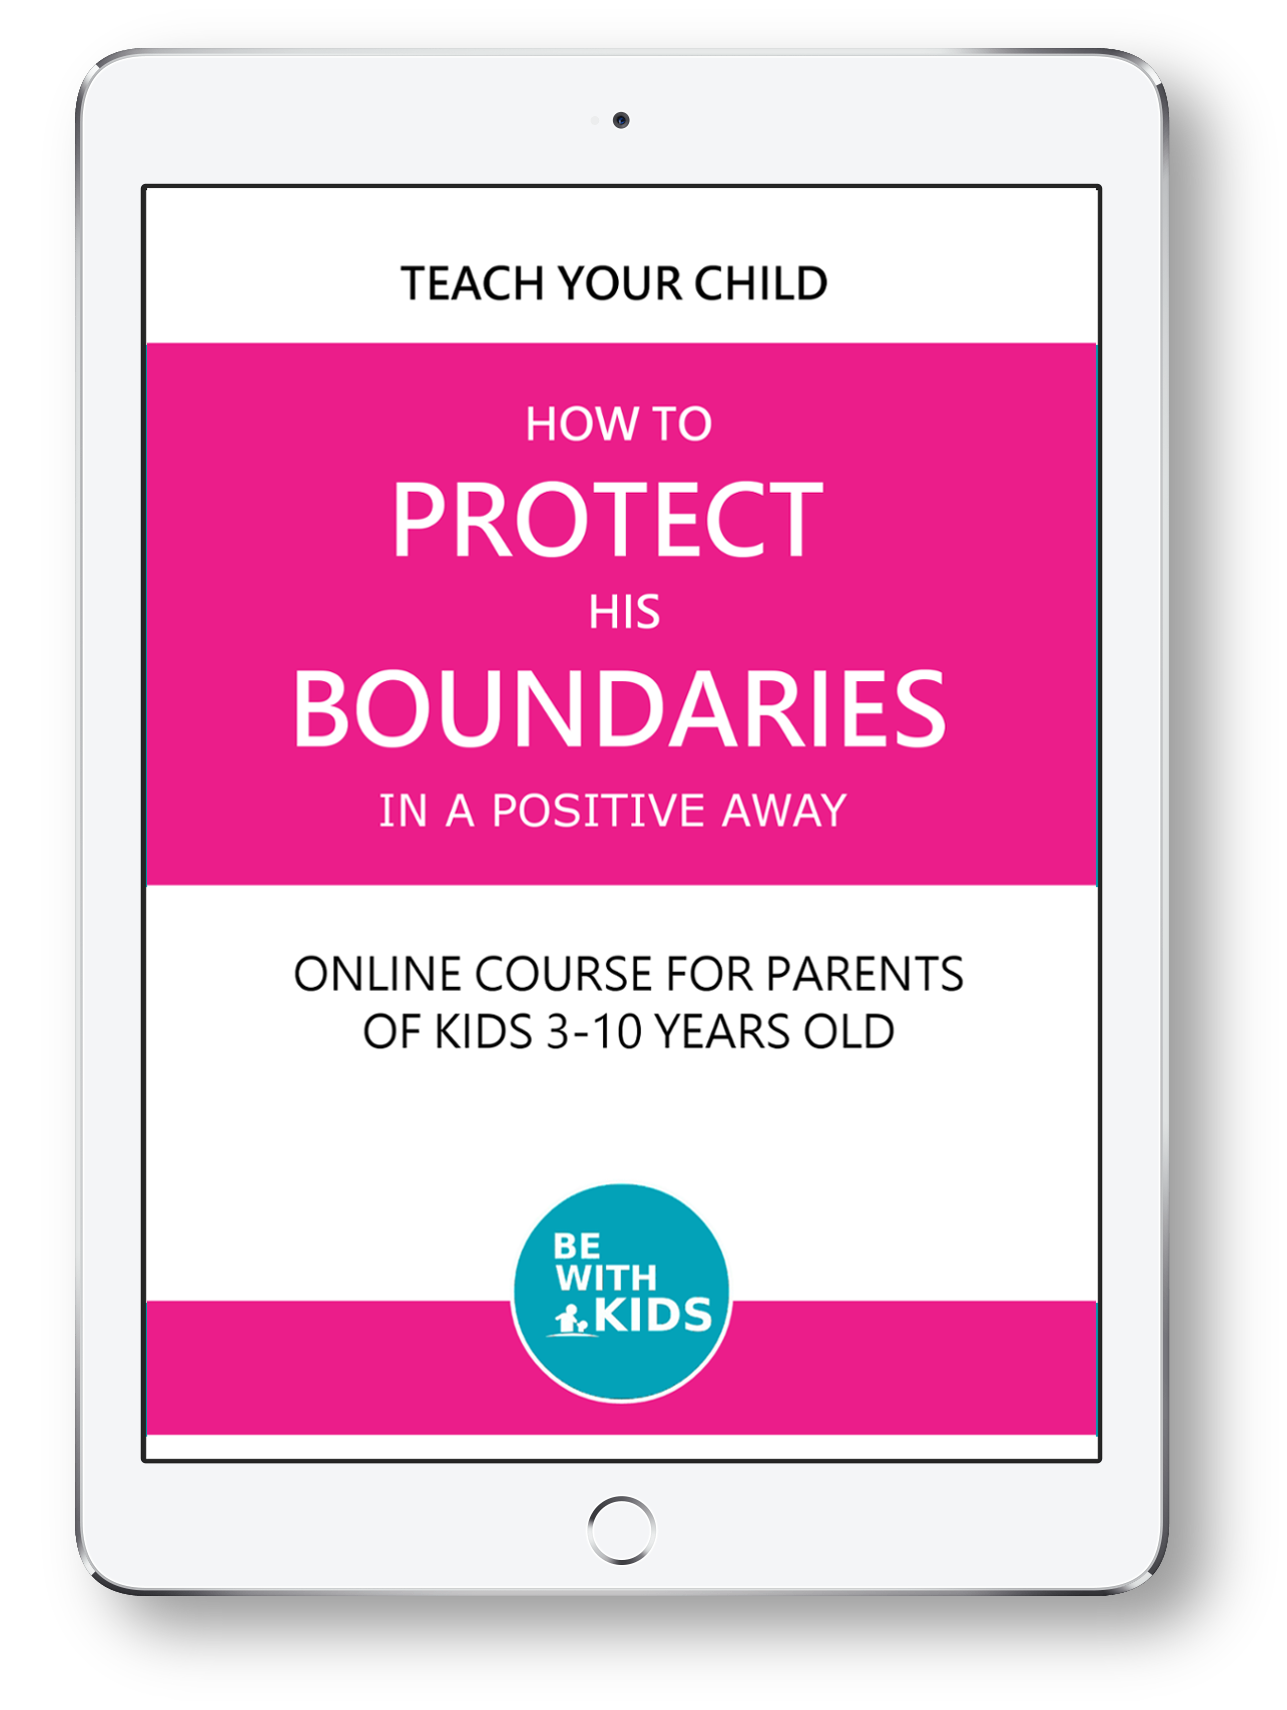 A backbone of your child's confidence and ability to stand up for himself. Kids learn their values, rights and duties and how to respond when their boundaries are crossed (even when wearing pink on a boy's team).